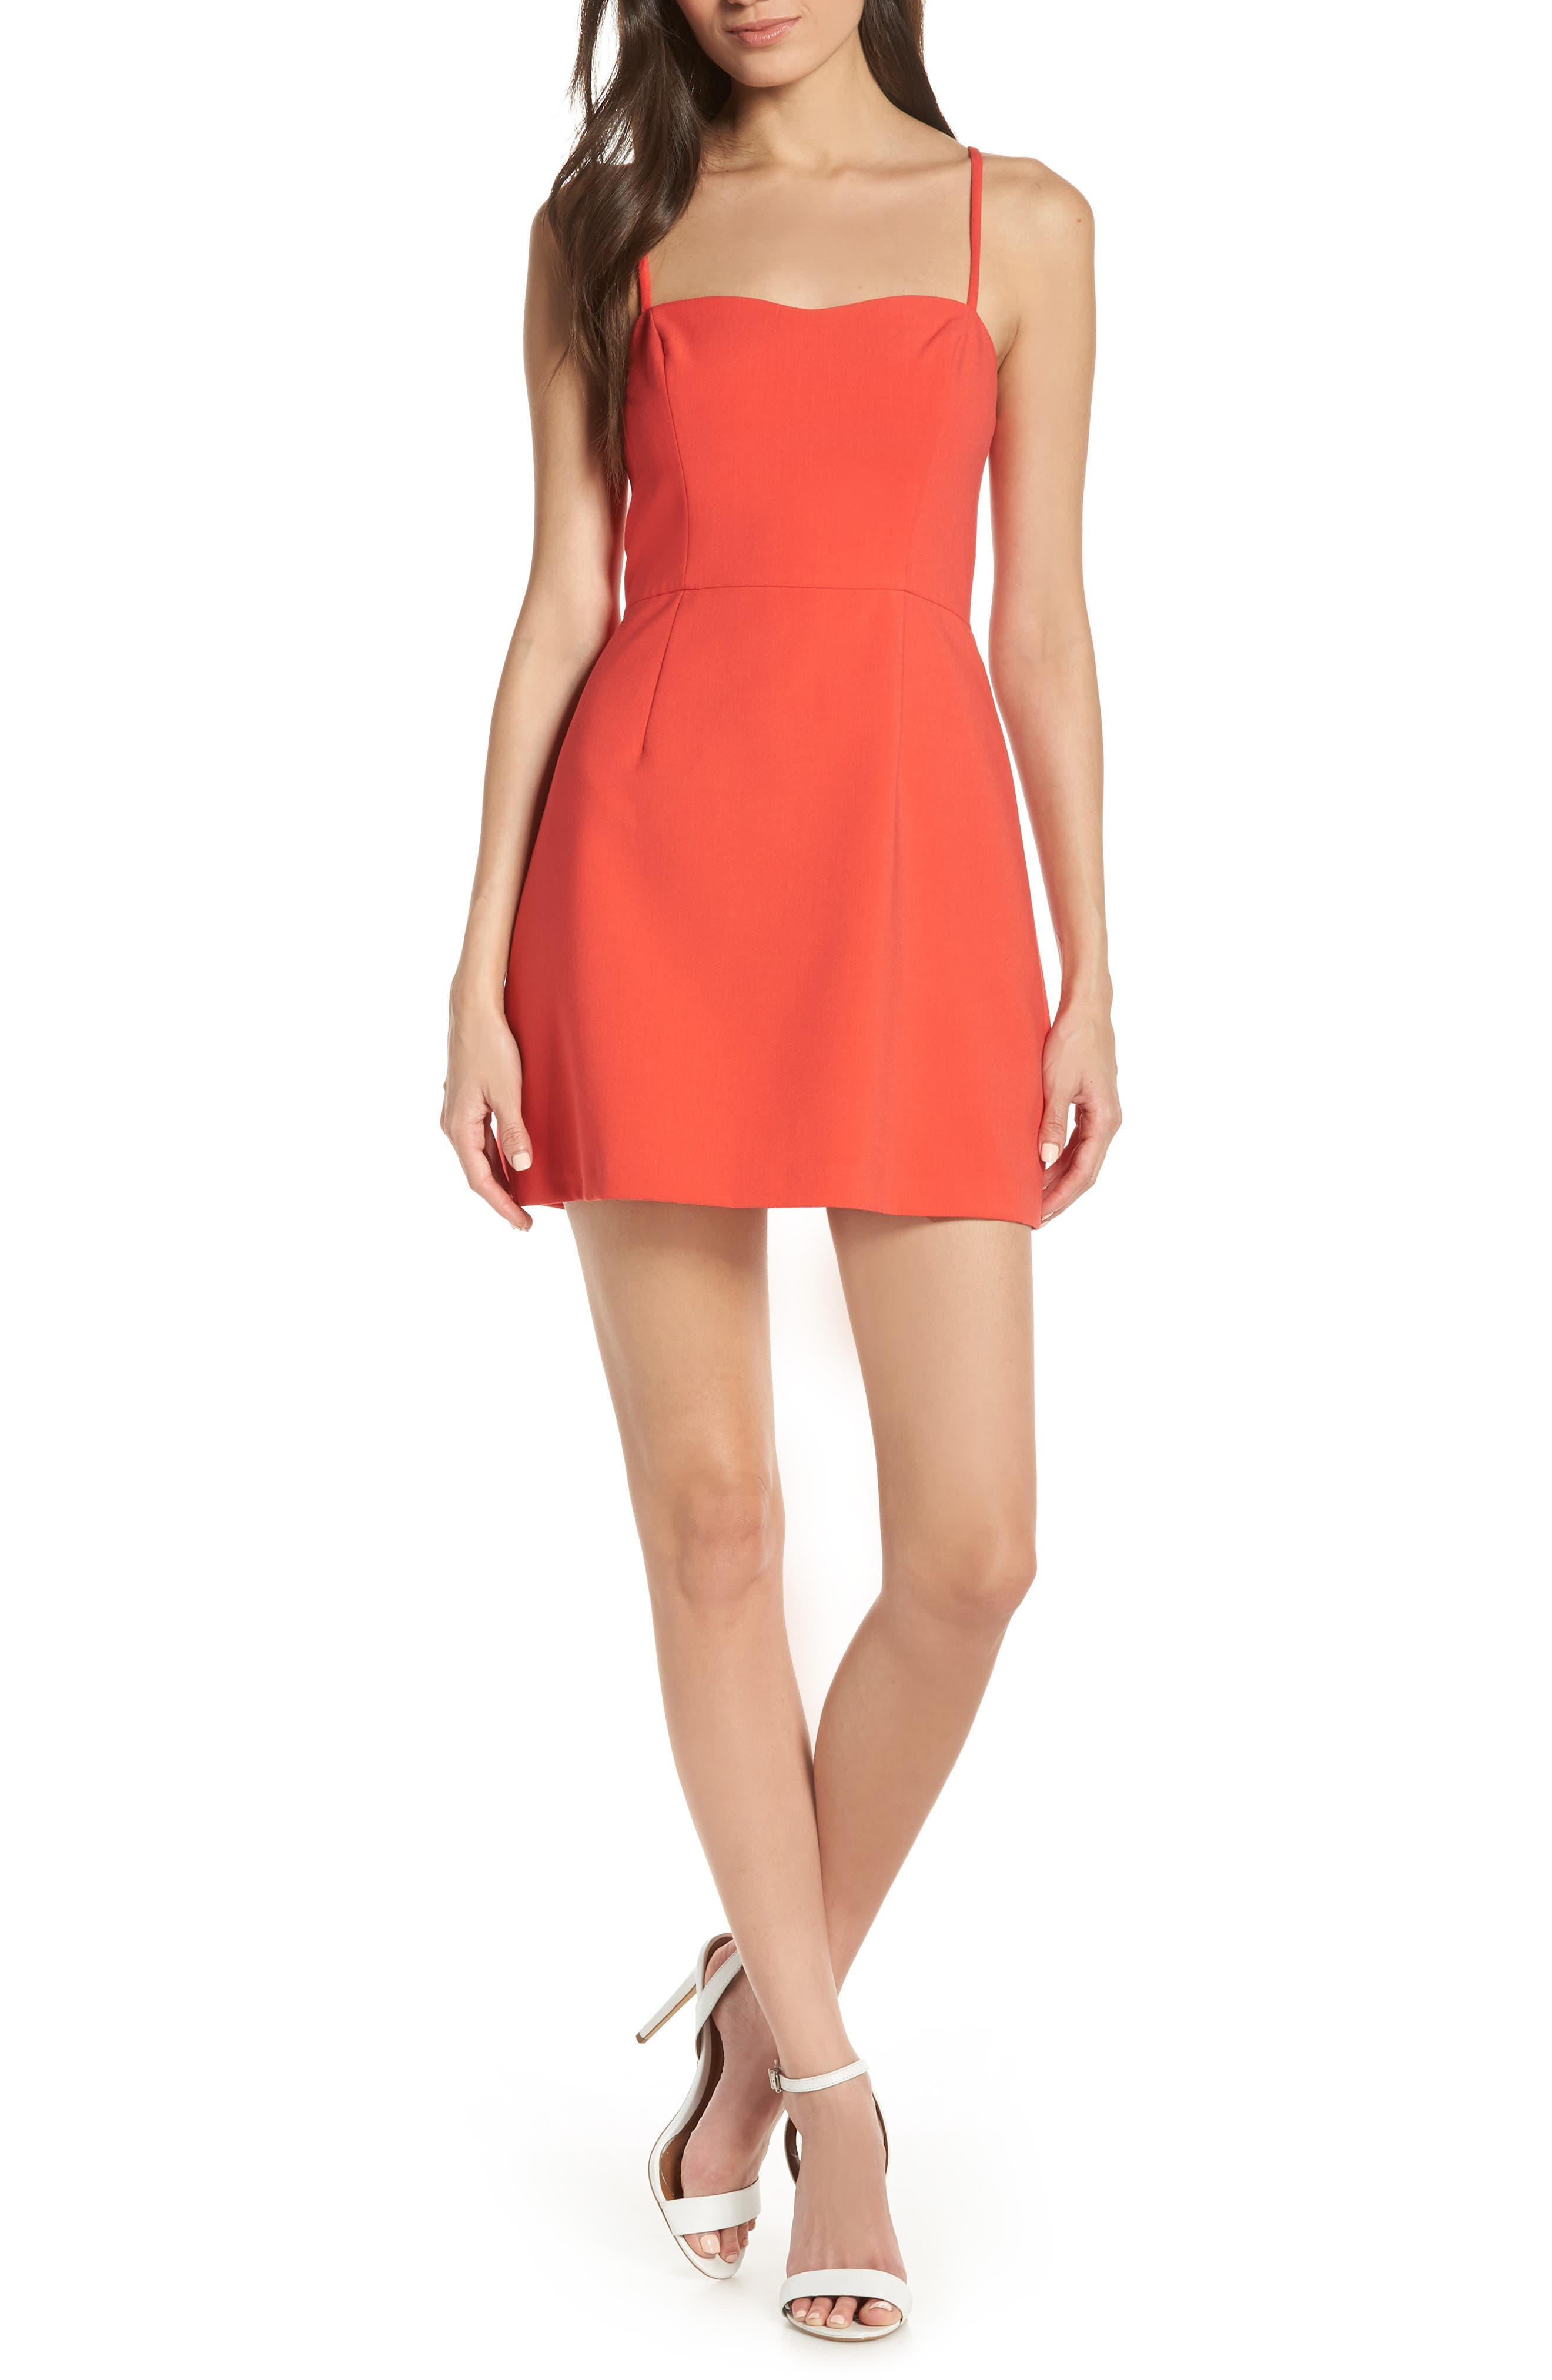 FRENCH CONNECTION, Whisper Light Sweetheart Minidress, Main thumbnail 1, color, FIRE CORAL